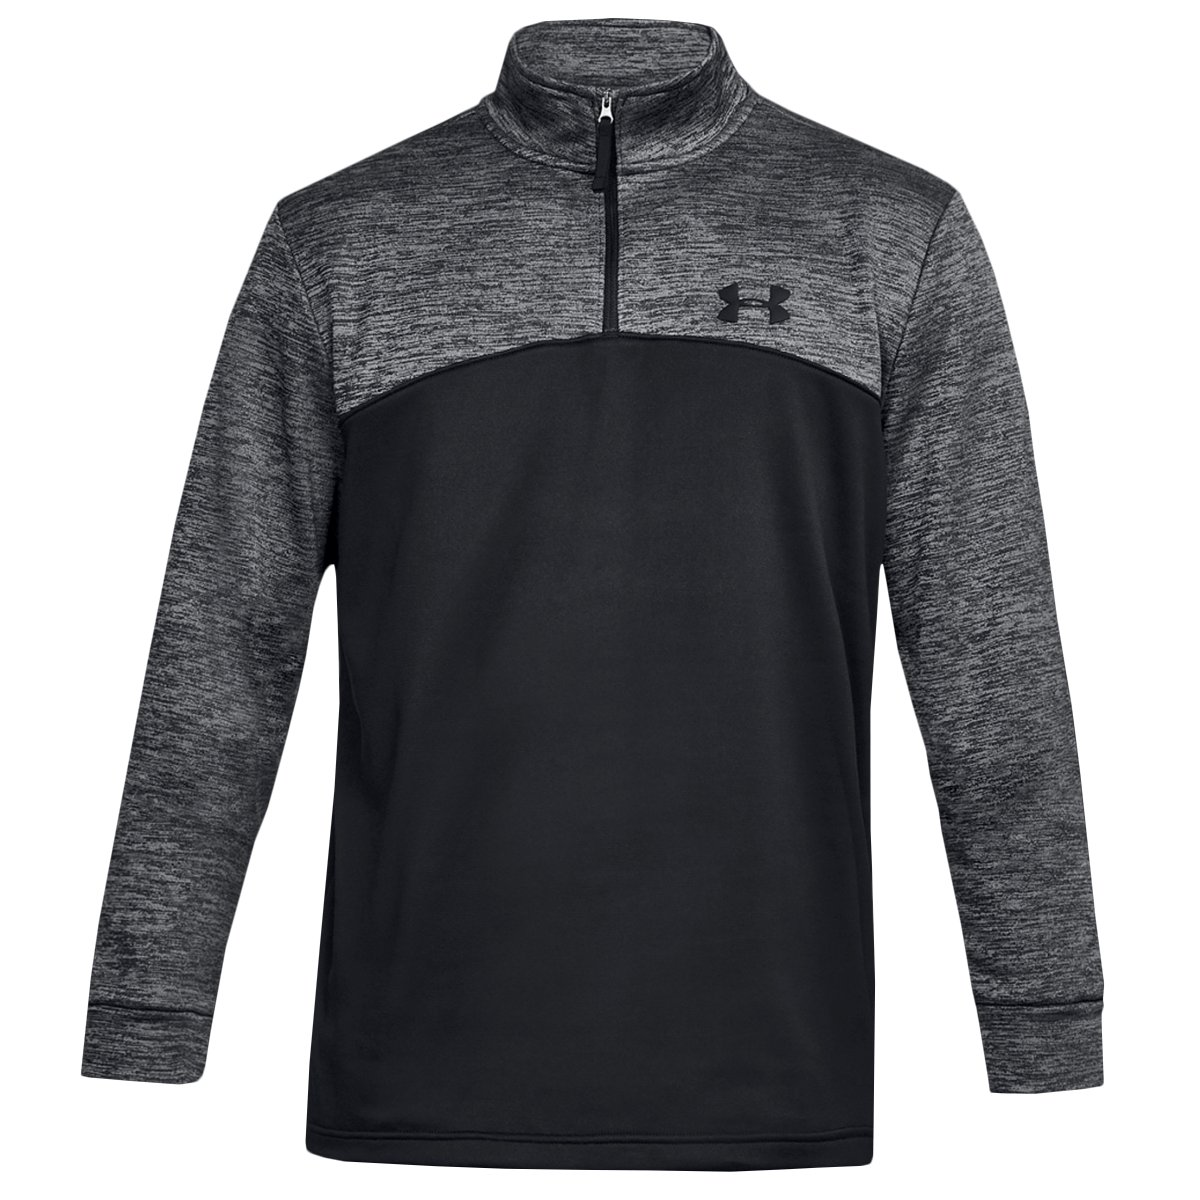 TALLA 2XL. Under Armour AF ICON 1/4 ZIP - Sudadera  para Hombre